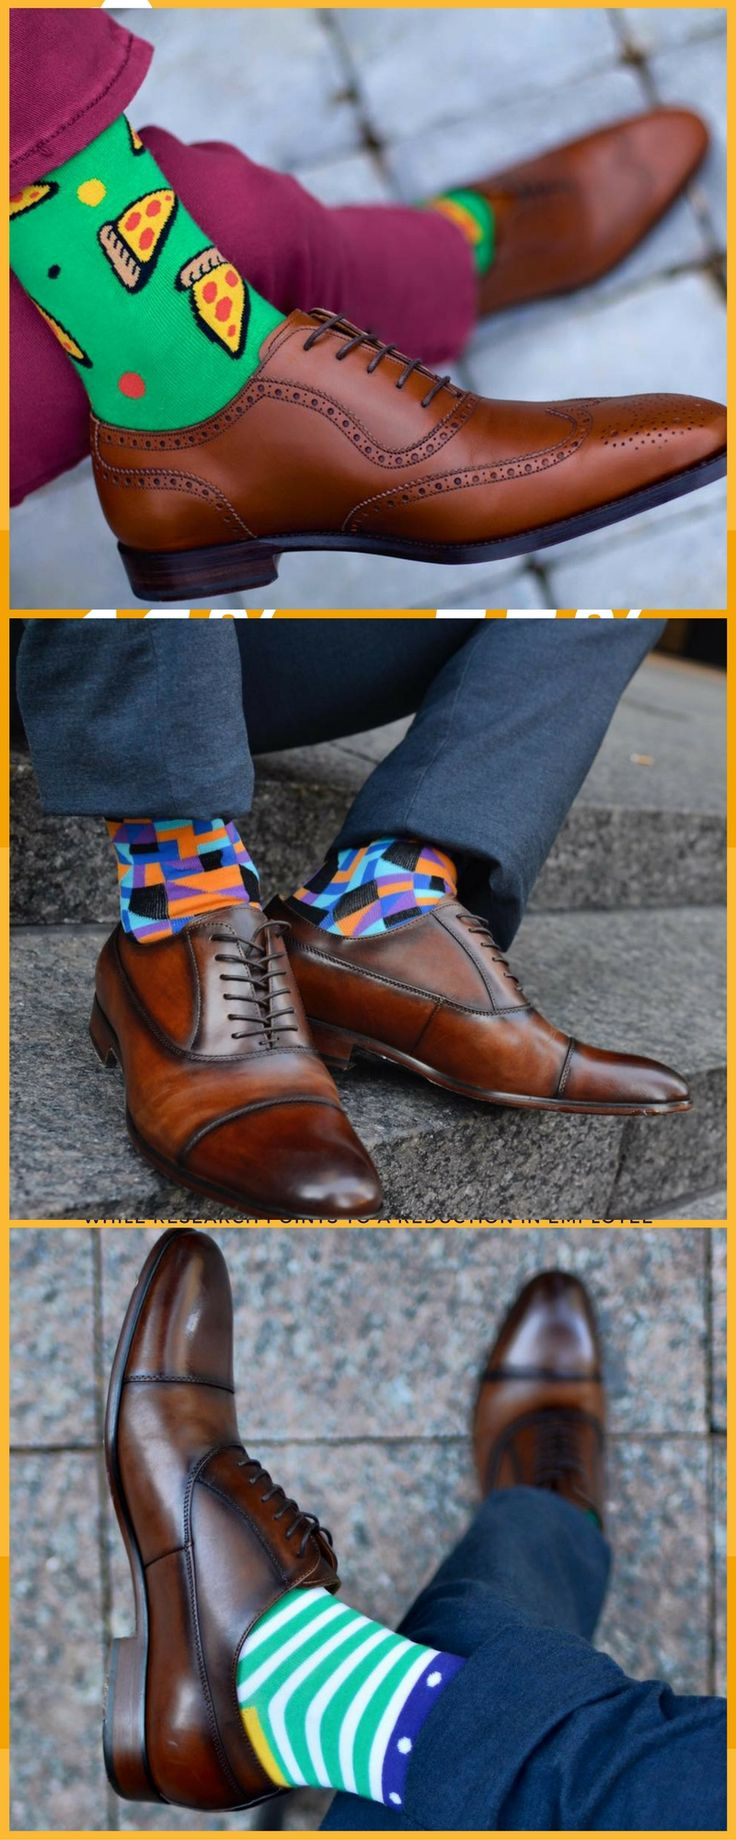 They only remember the person who stands out. Let your sock game do the work for you.